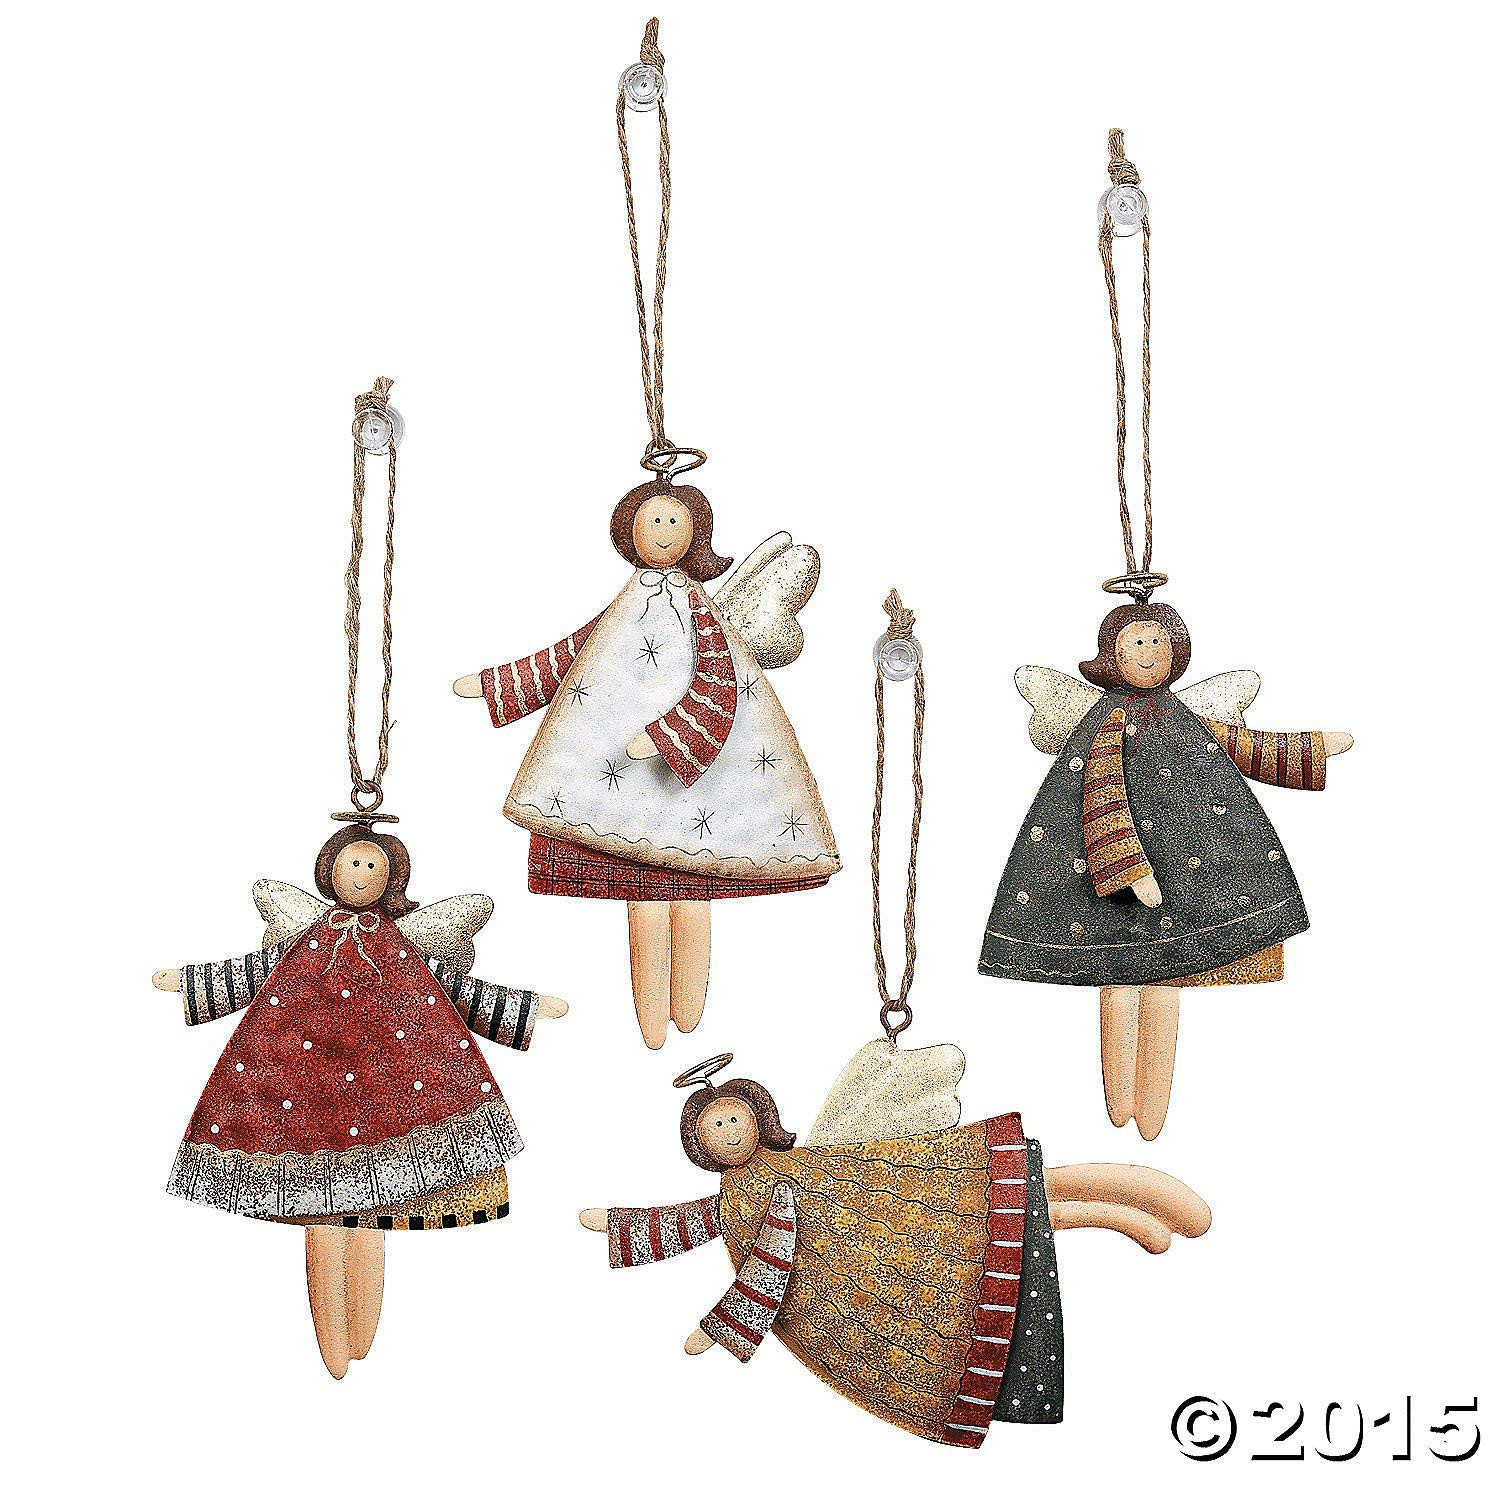 Angel Christmas ornaments Inspirational Christmas Angels ornament Sets Of Gorgeous 40 Photos Angel Christmas ornaments